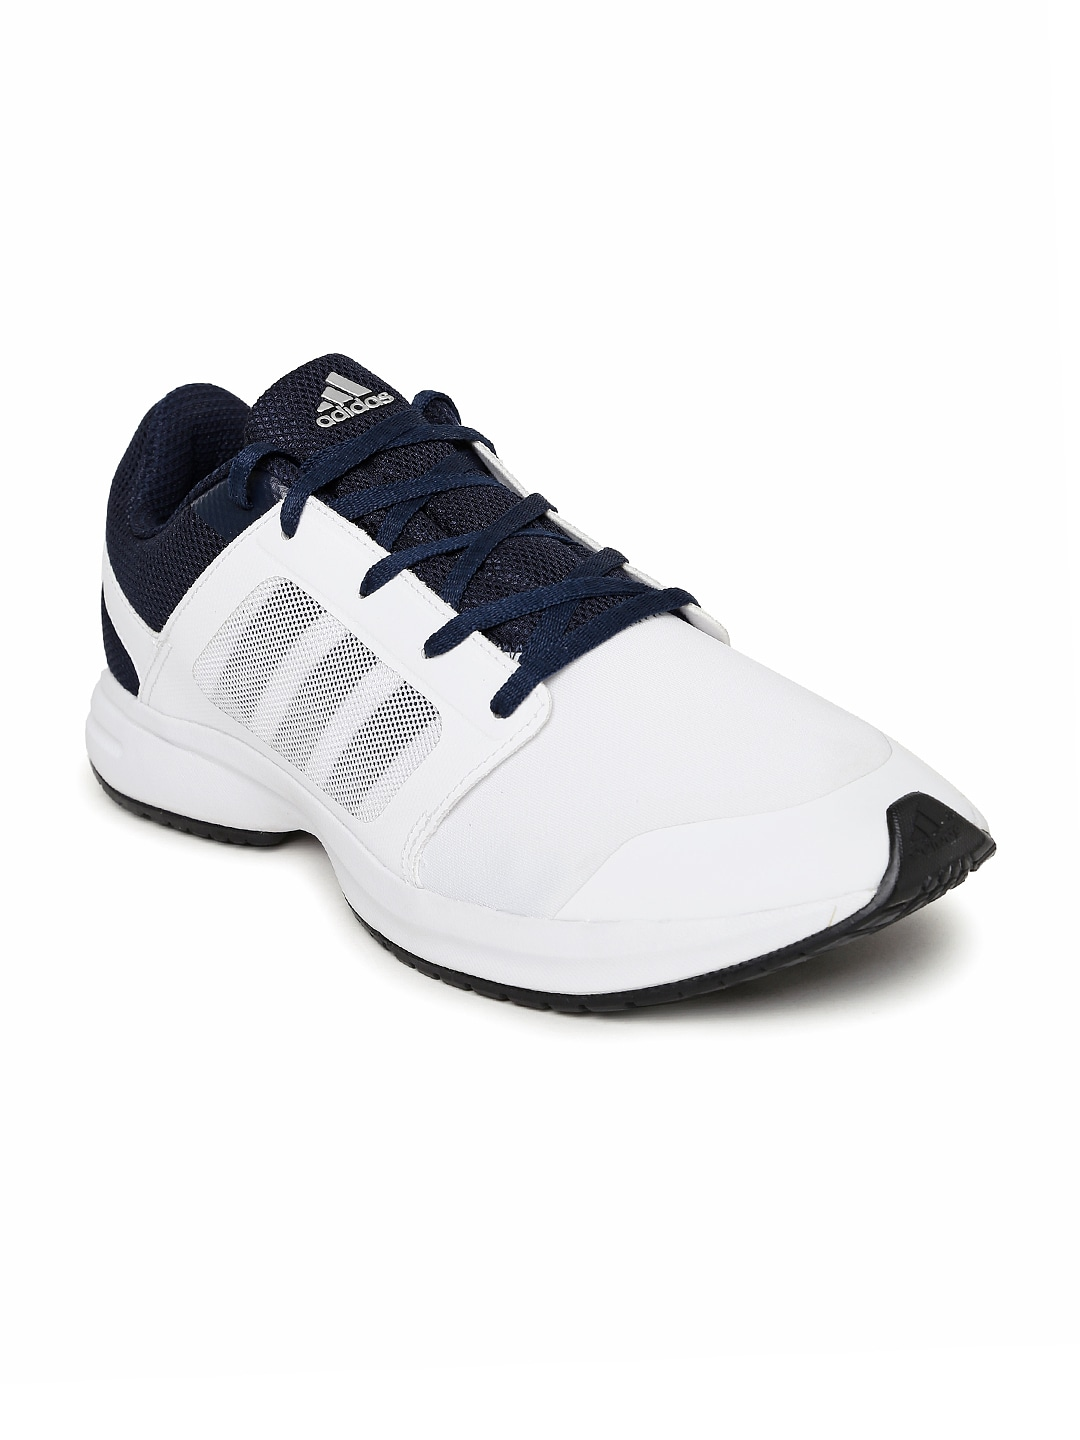 Adidas ba2809 Men White And Navy Kray 1 0 Running Shoes- Price in India